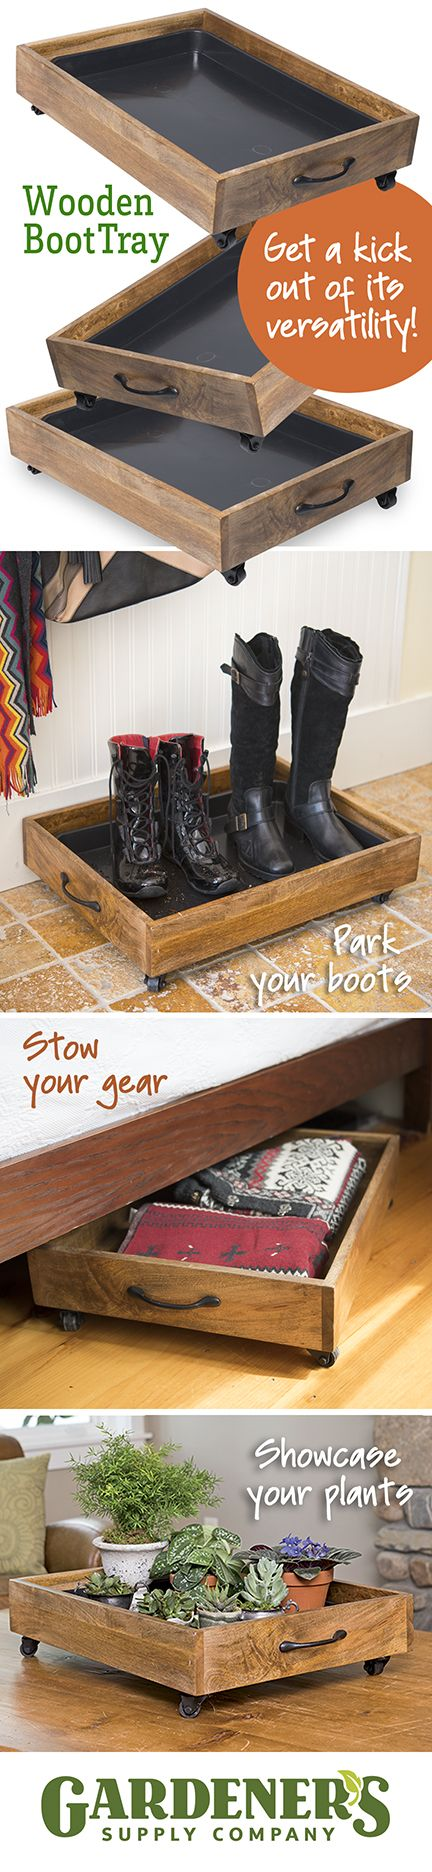 Our versatile Wooden Boot Tray is perfect for so many uses. Its waterproof liner protects surfaces from mud and water. Wheels and handle make it easy to move.